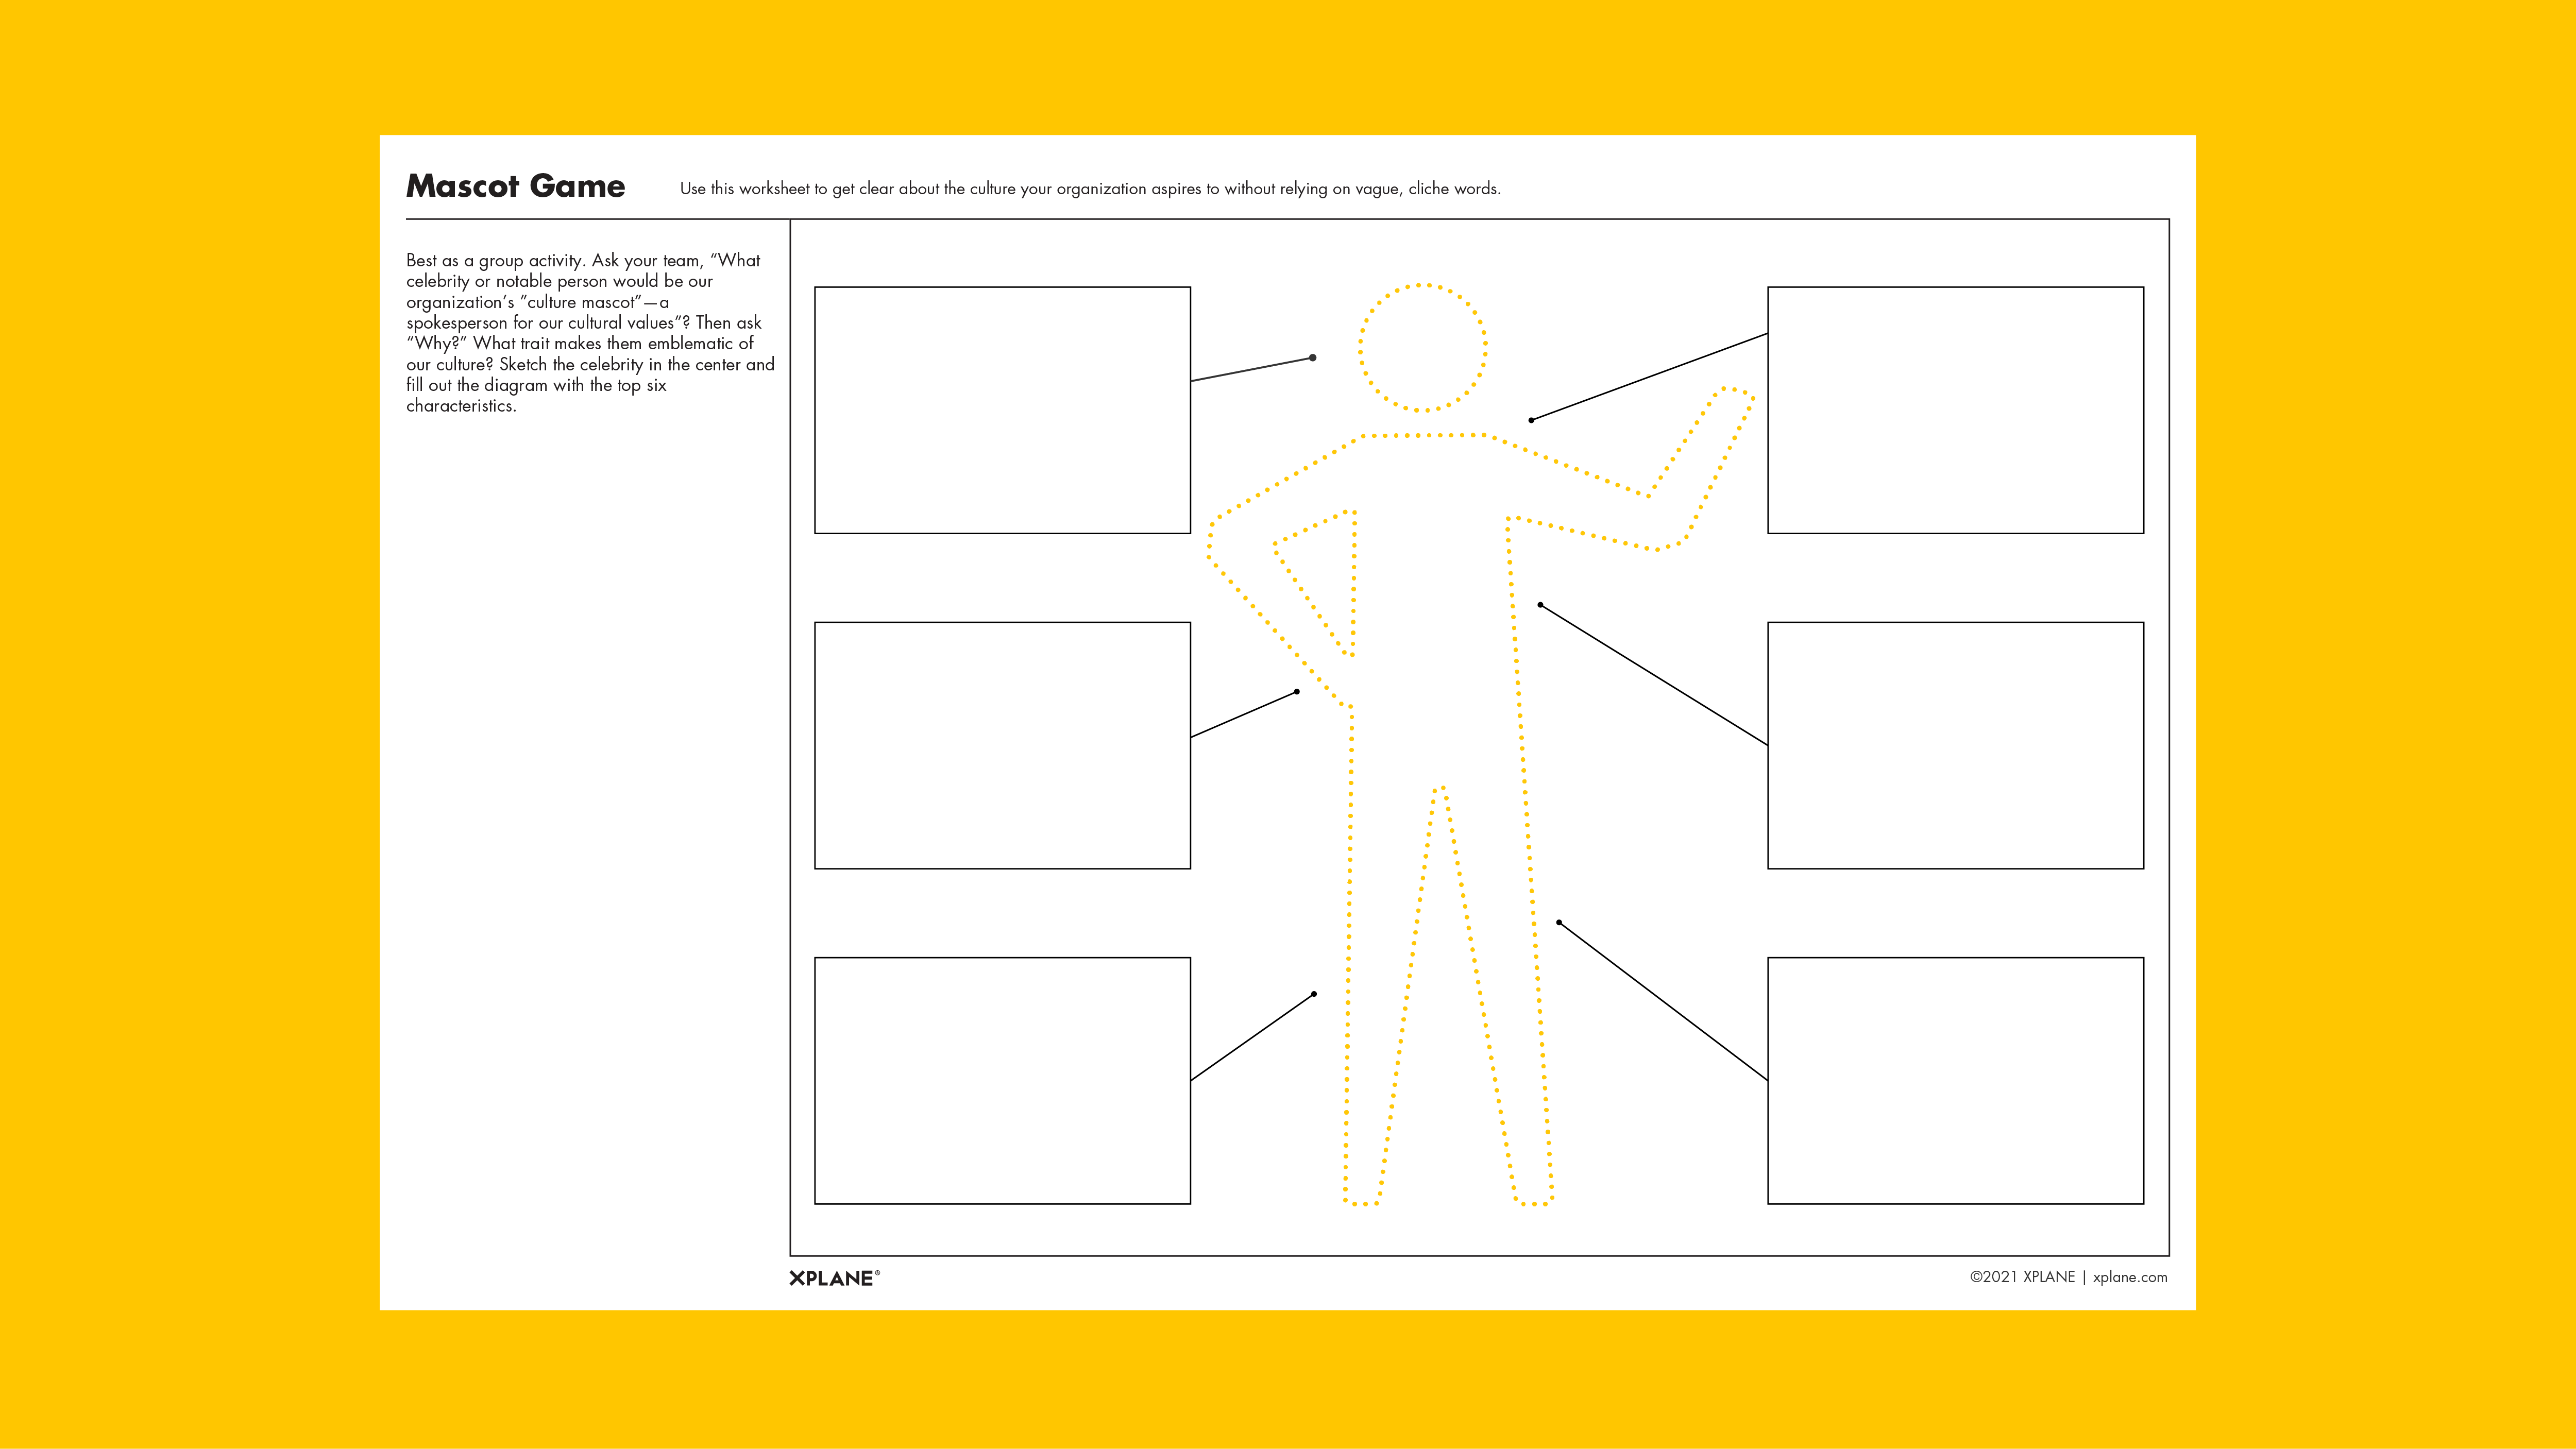 Mascot Game worksheet against yellow background